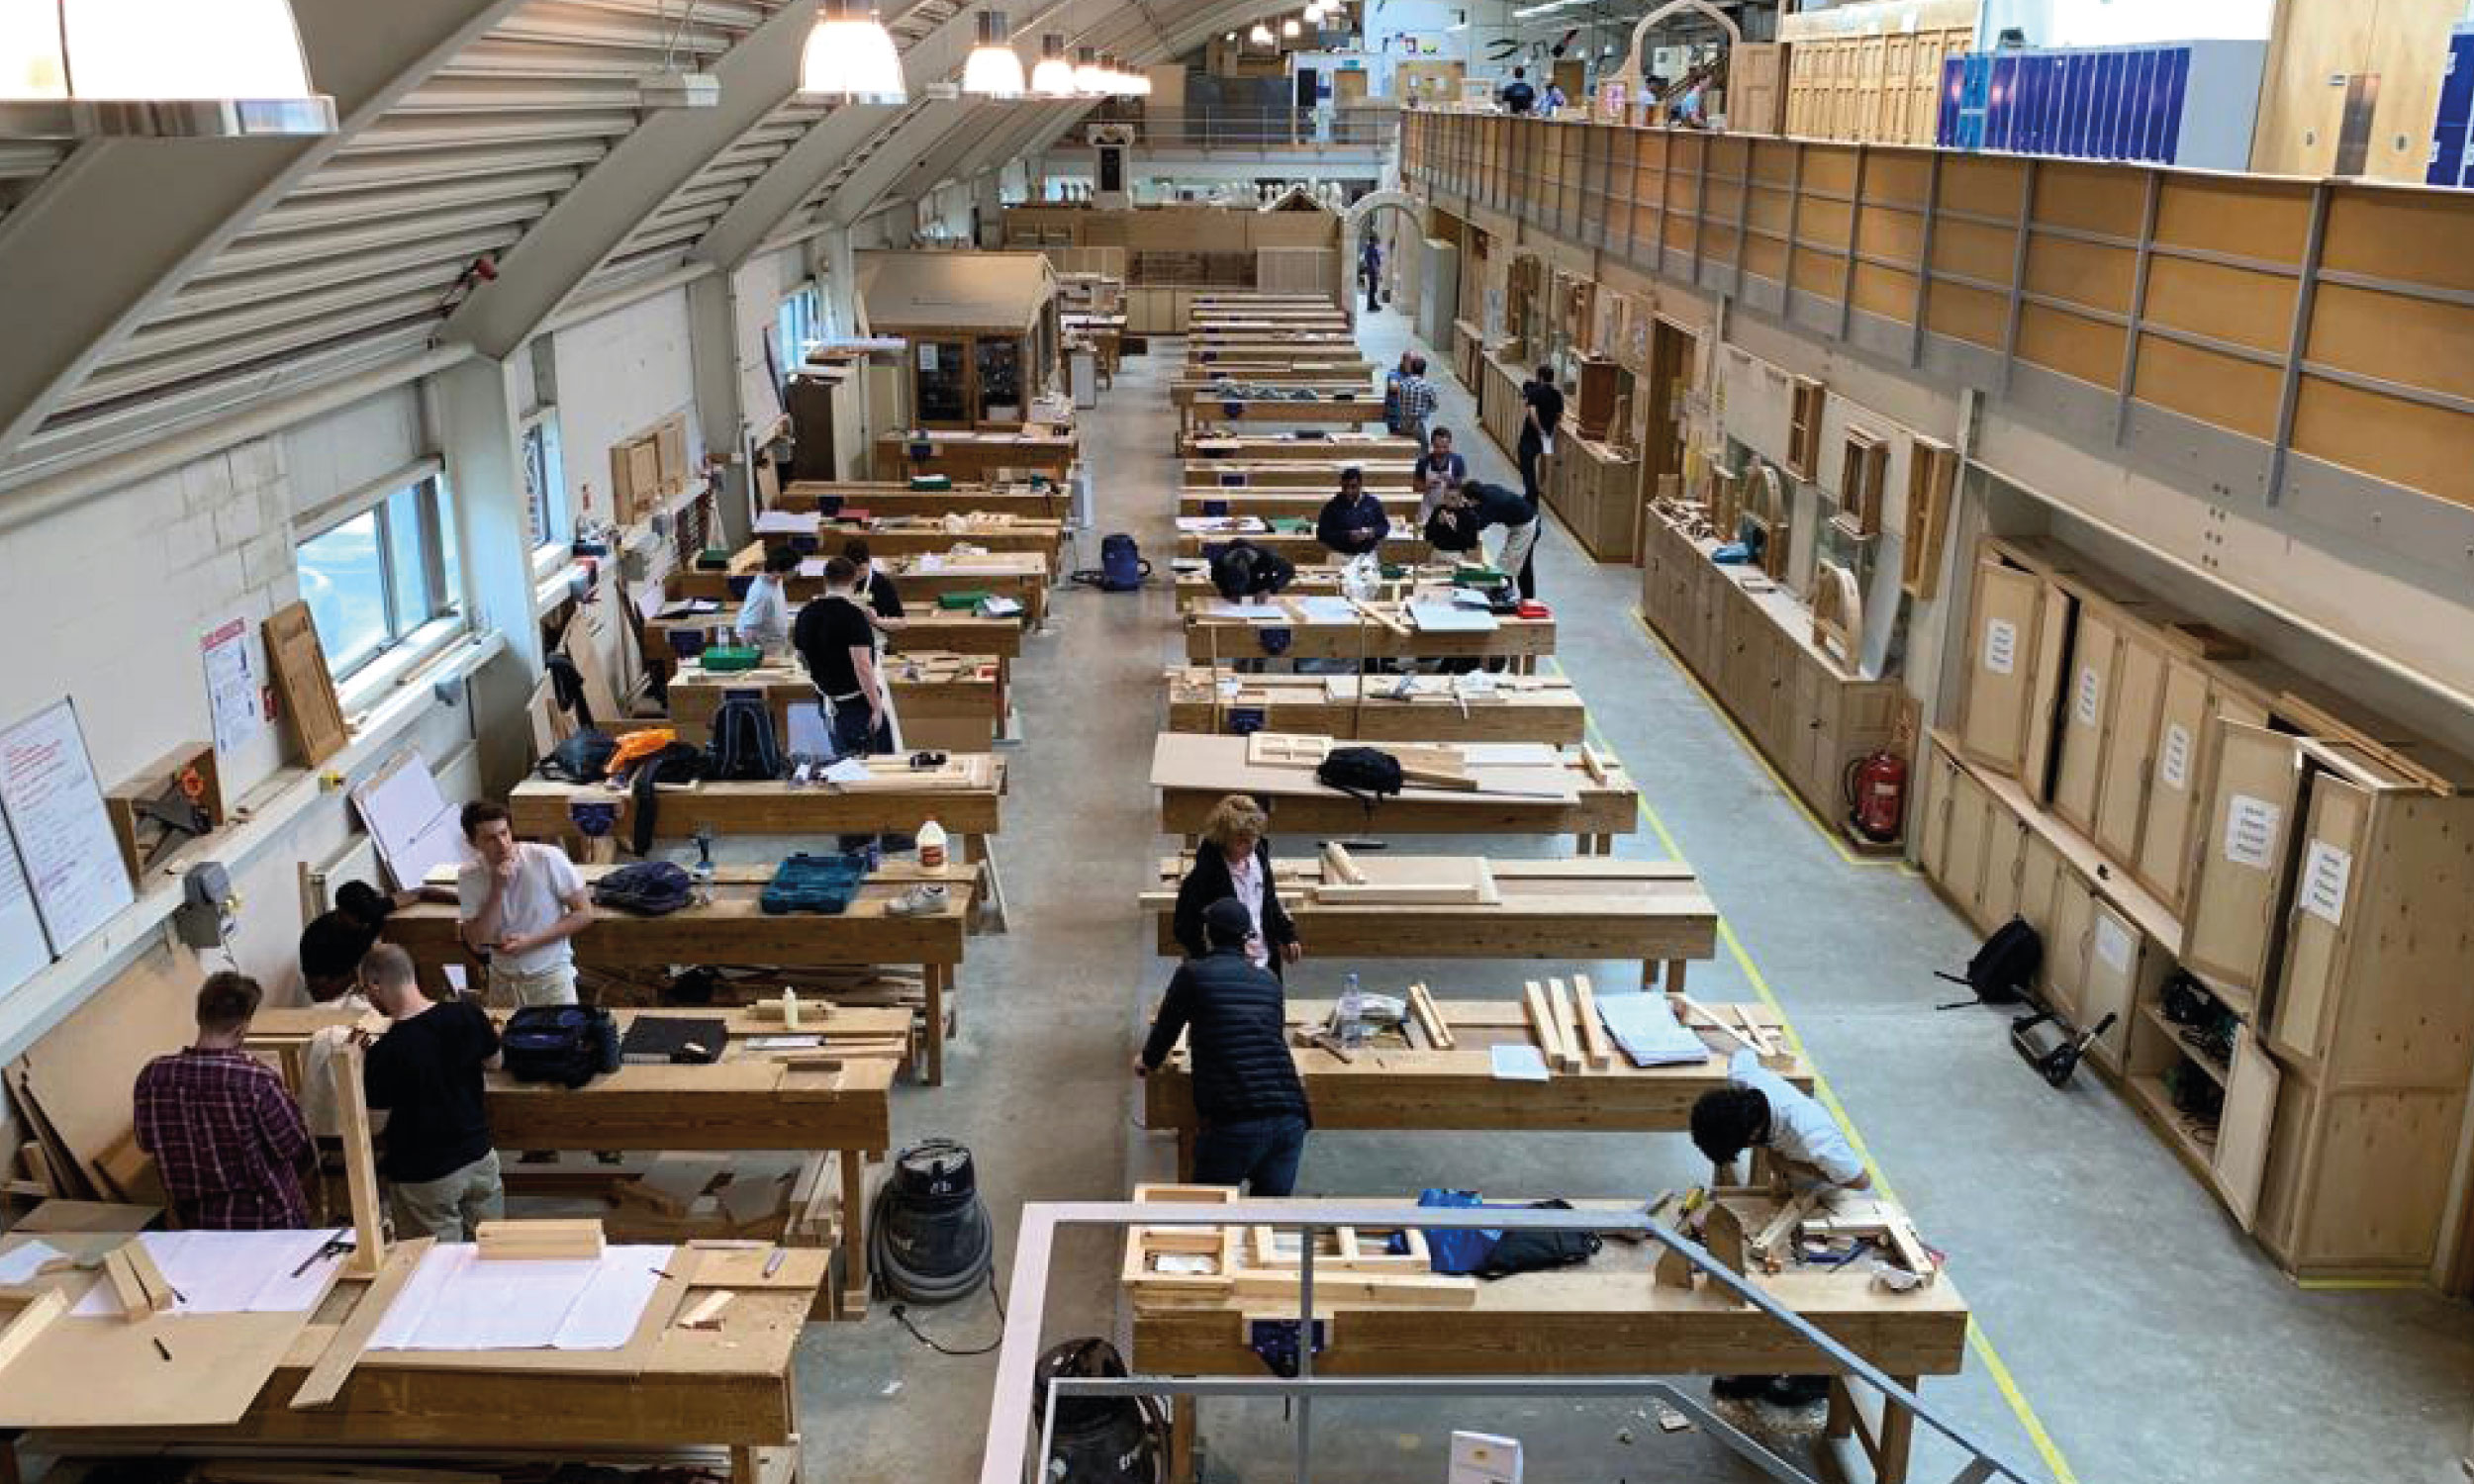 The joinery workshop at the BCC full of work benches